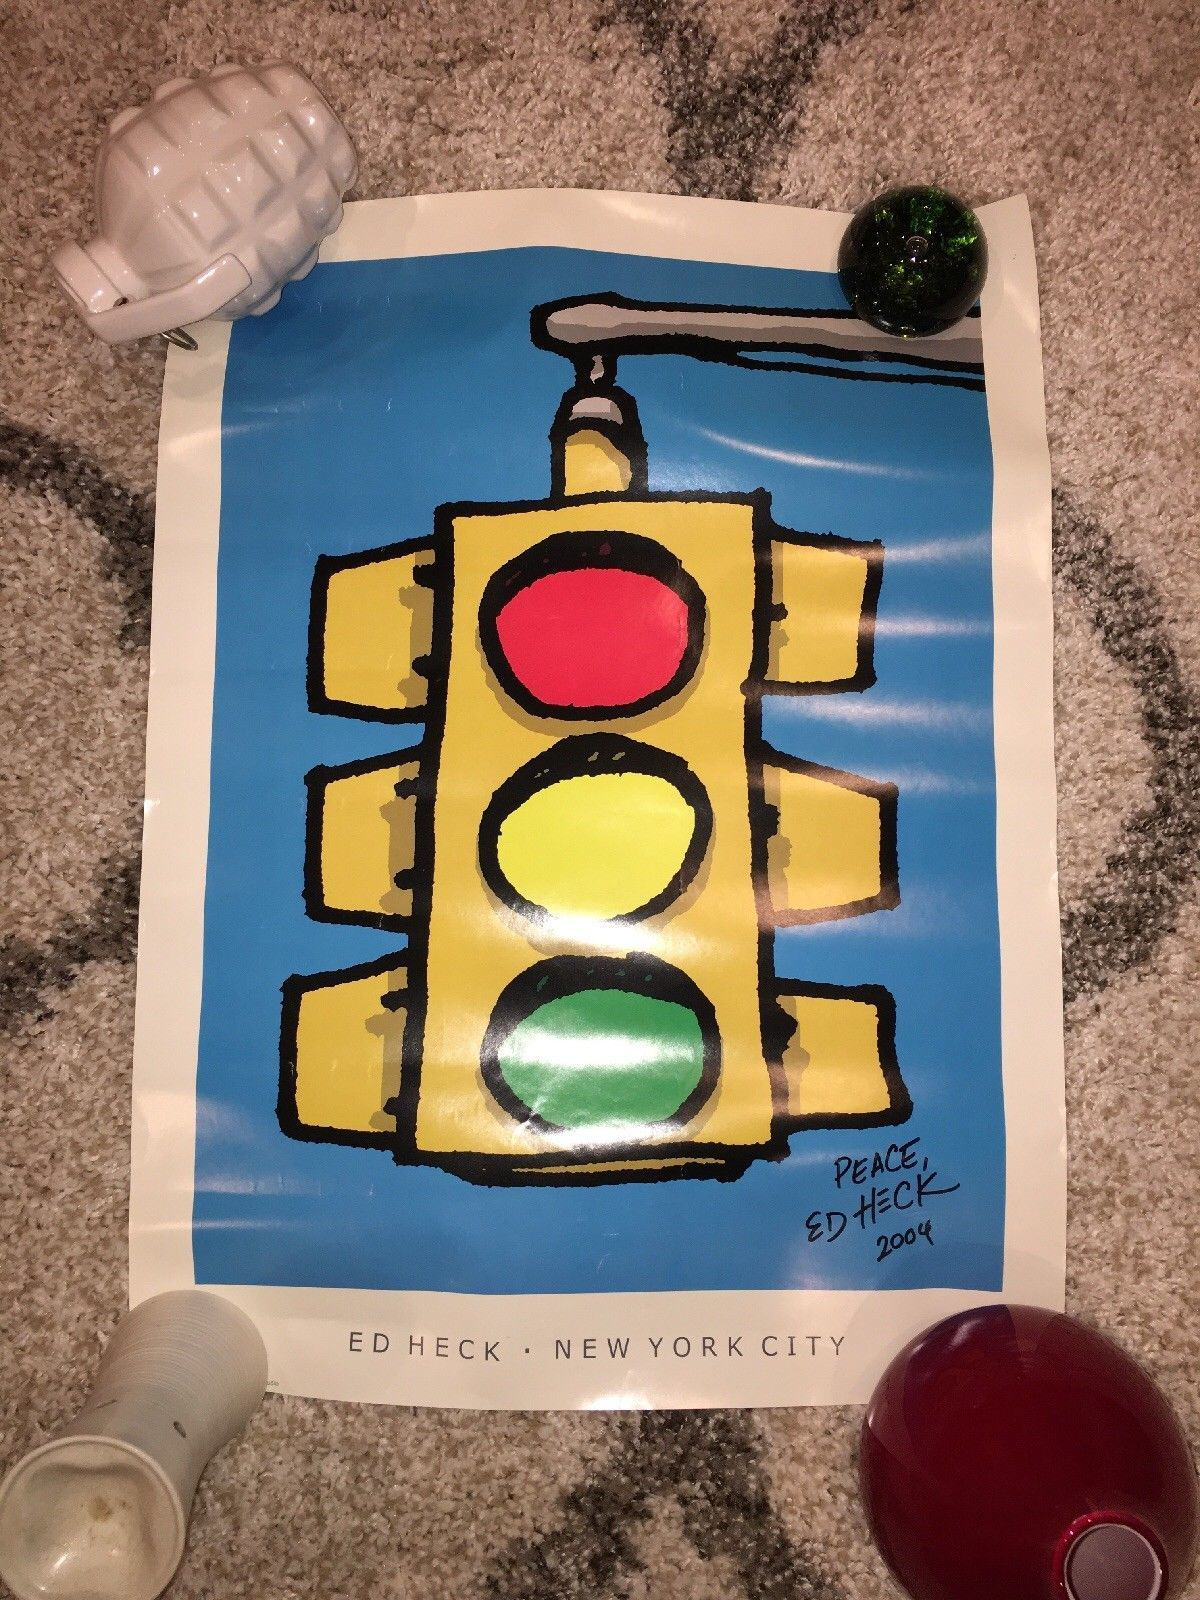 Ed Heck Traffic Light Poster Authentic Signed 2004 New York City Art Show